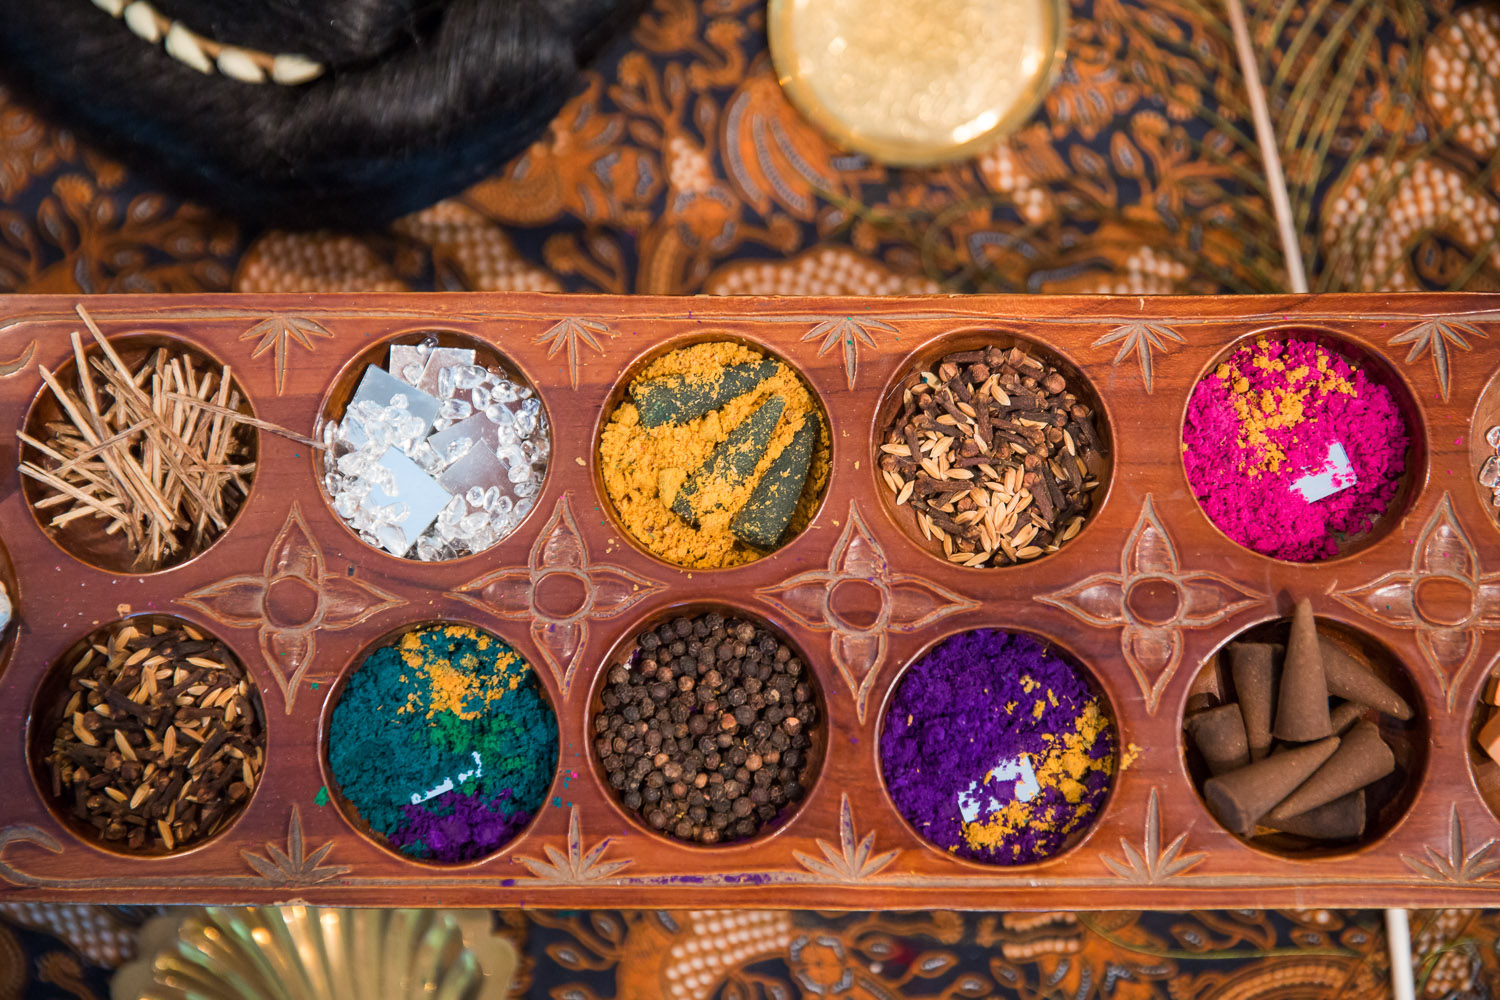 Zarina Muhammad, 'Pragmatic Prayers for the Kala at the Threshold' (detail), 2018, bamboo, sandalwood, clay, stone, turmeric powder, sandalwood powder, saffron, nine grains and spices, rose water, incense, glass jars and paper, dimensions variable. Image courtesy of Singapore Art Museum.